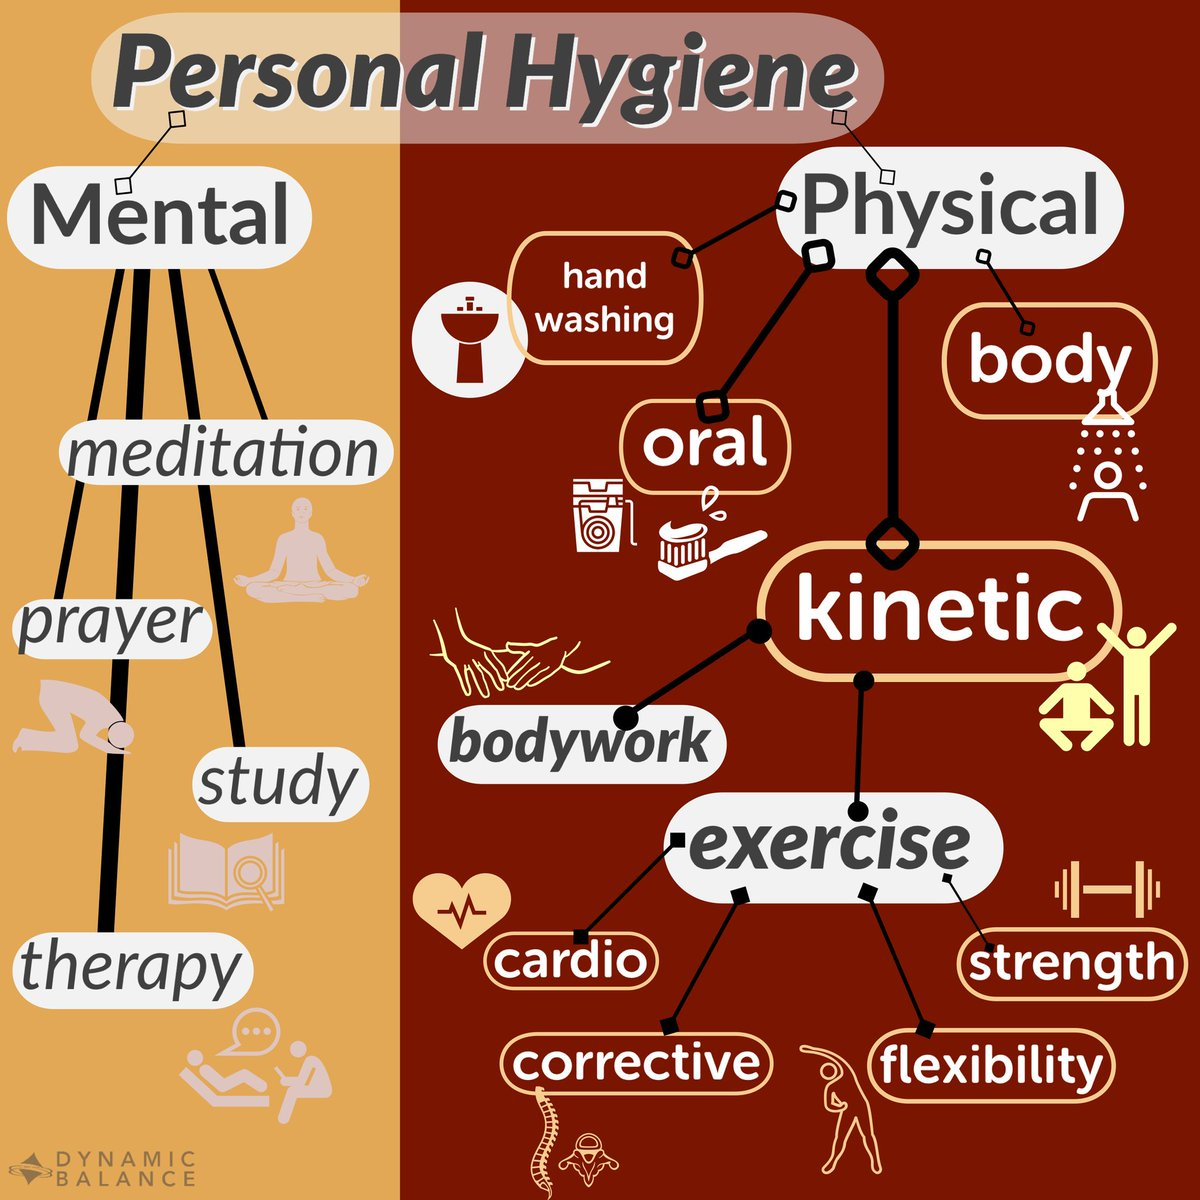 #kinetichygiene is a part of #physicalhygiene is a part of #personalhygiene is a part of #wellness is avoiding #illness